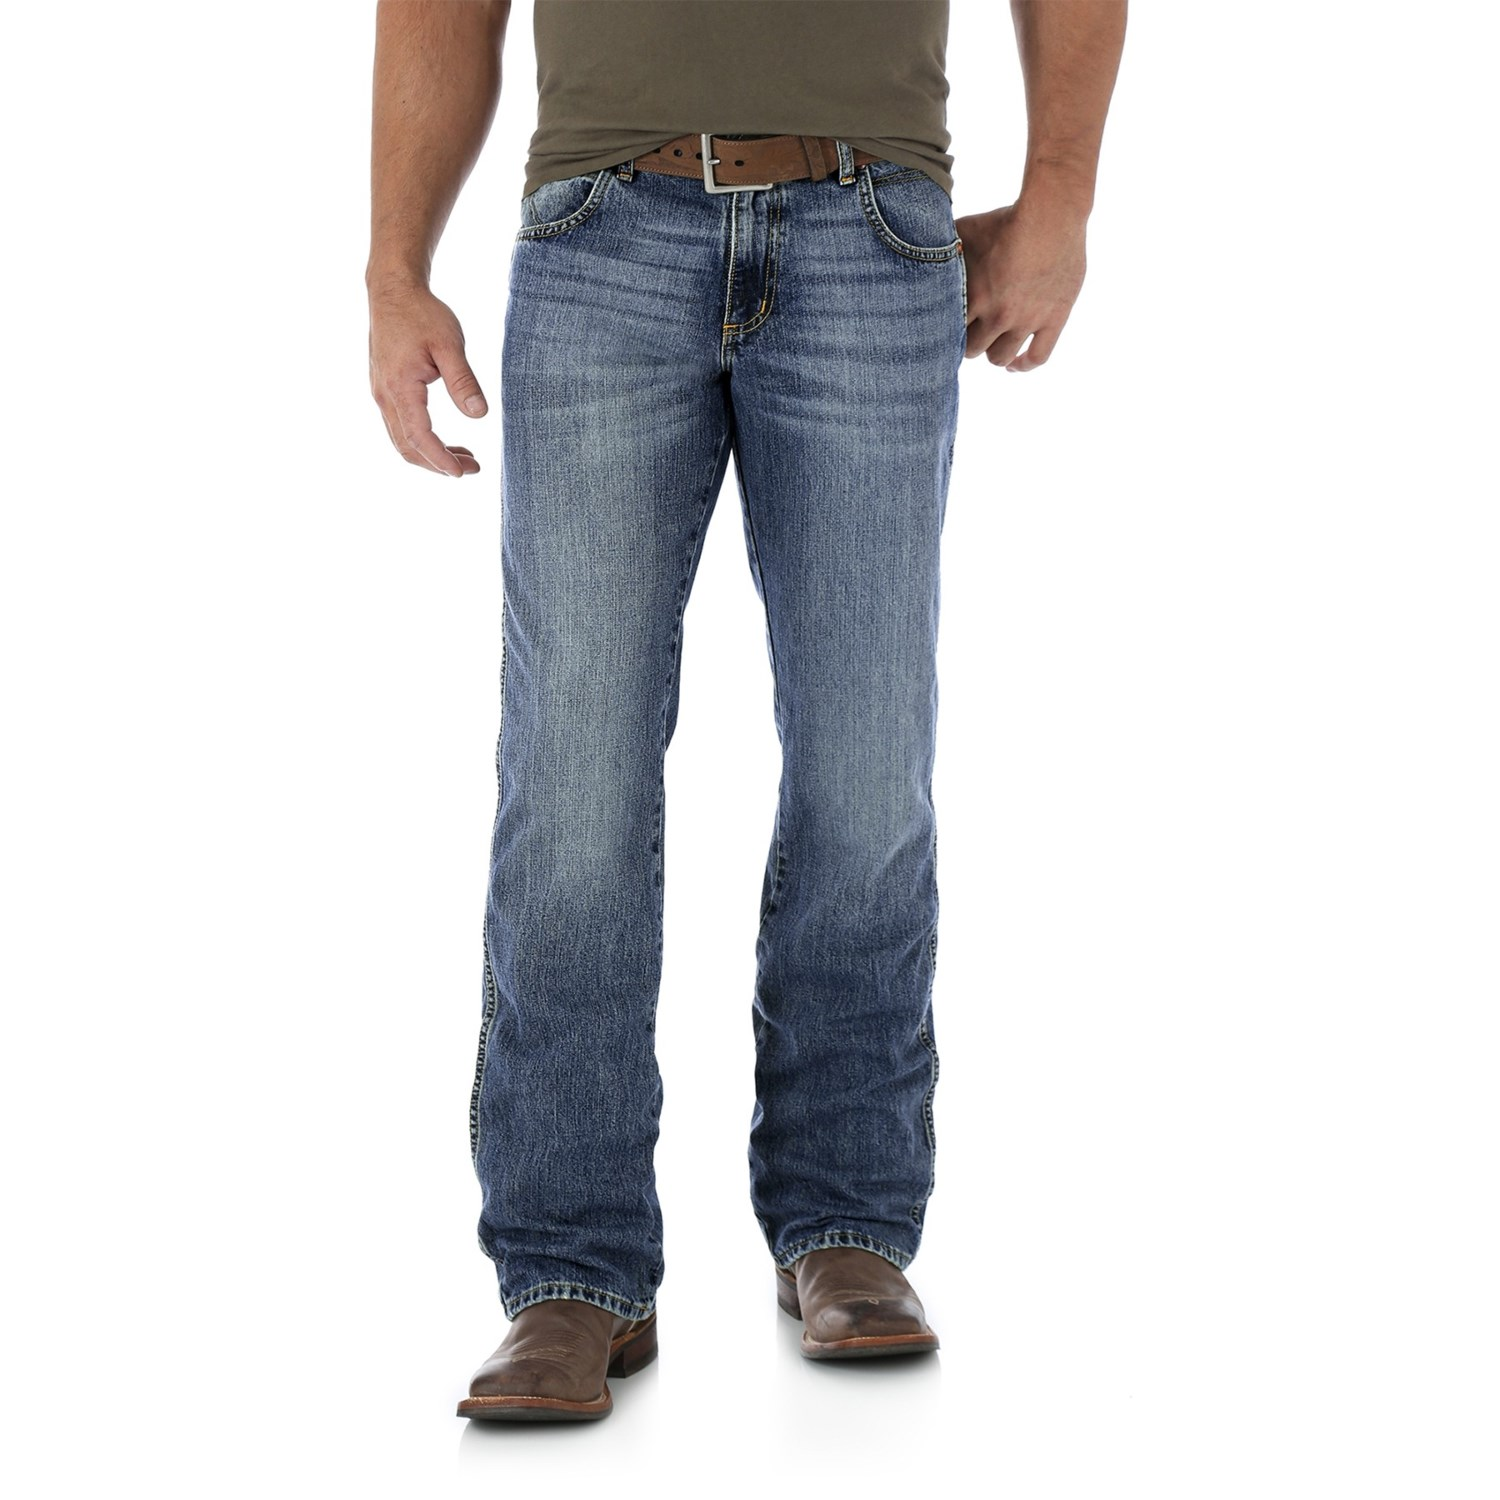 wranglers jeans consumer buying decisions Buyer decision making process of jeans and t-shirts  location preference for t shirt purchasing decision consumer buying behavior of jeans and t-shirts  ''a comparative analysis for customer satisfaction level of levi's & wrangler jeans uploaded by digvijay singh chauhan consumer behavior - levi's case study.